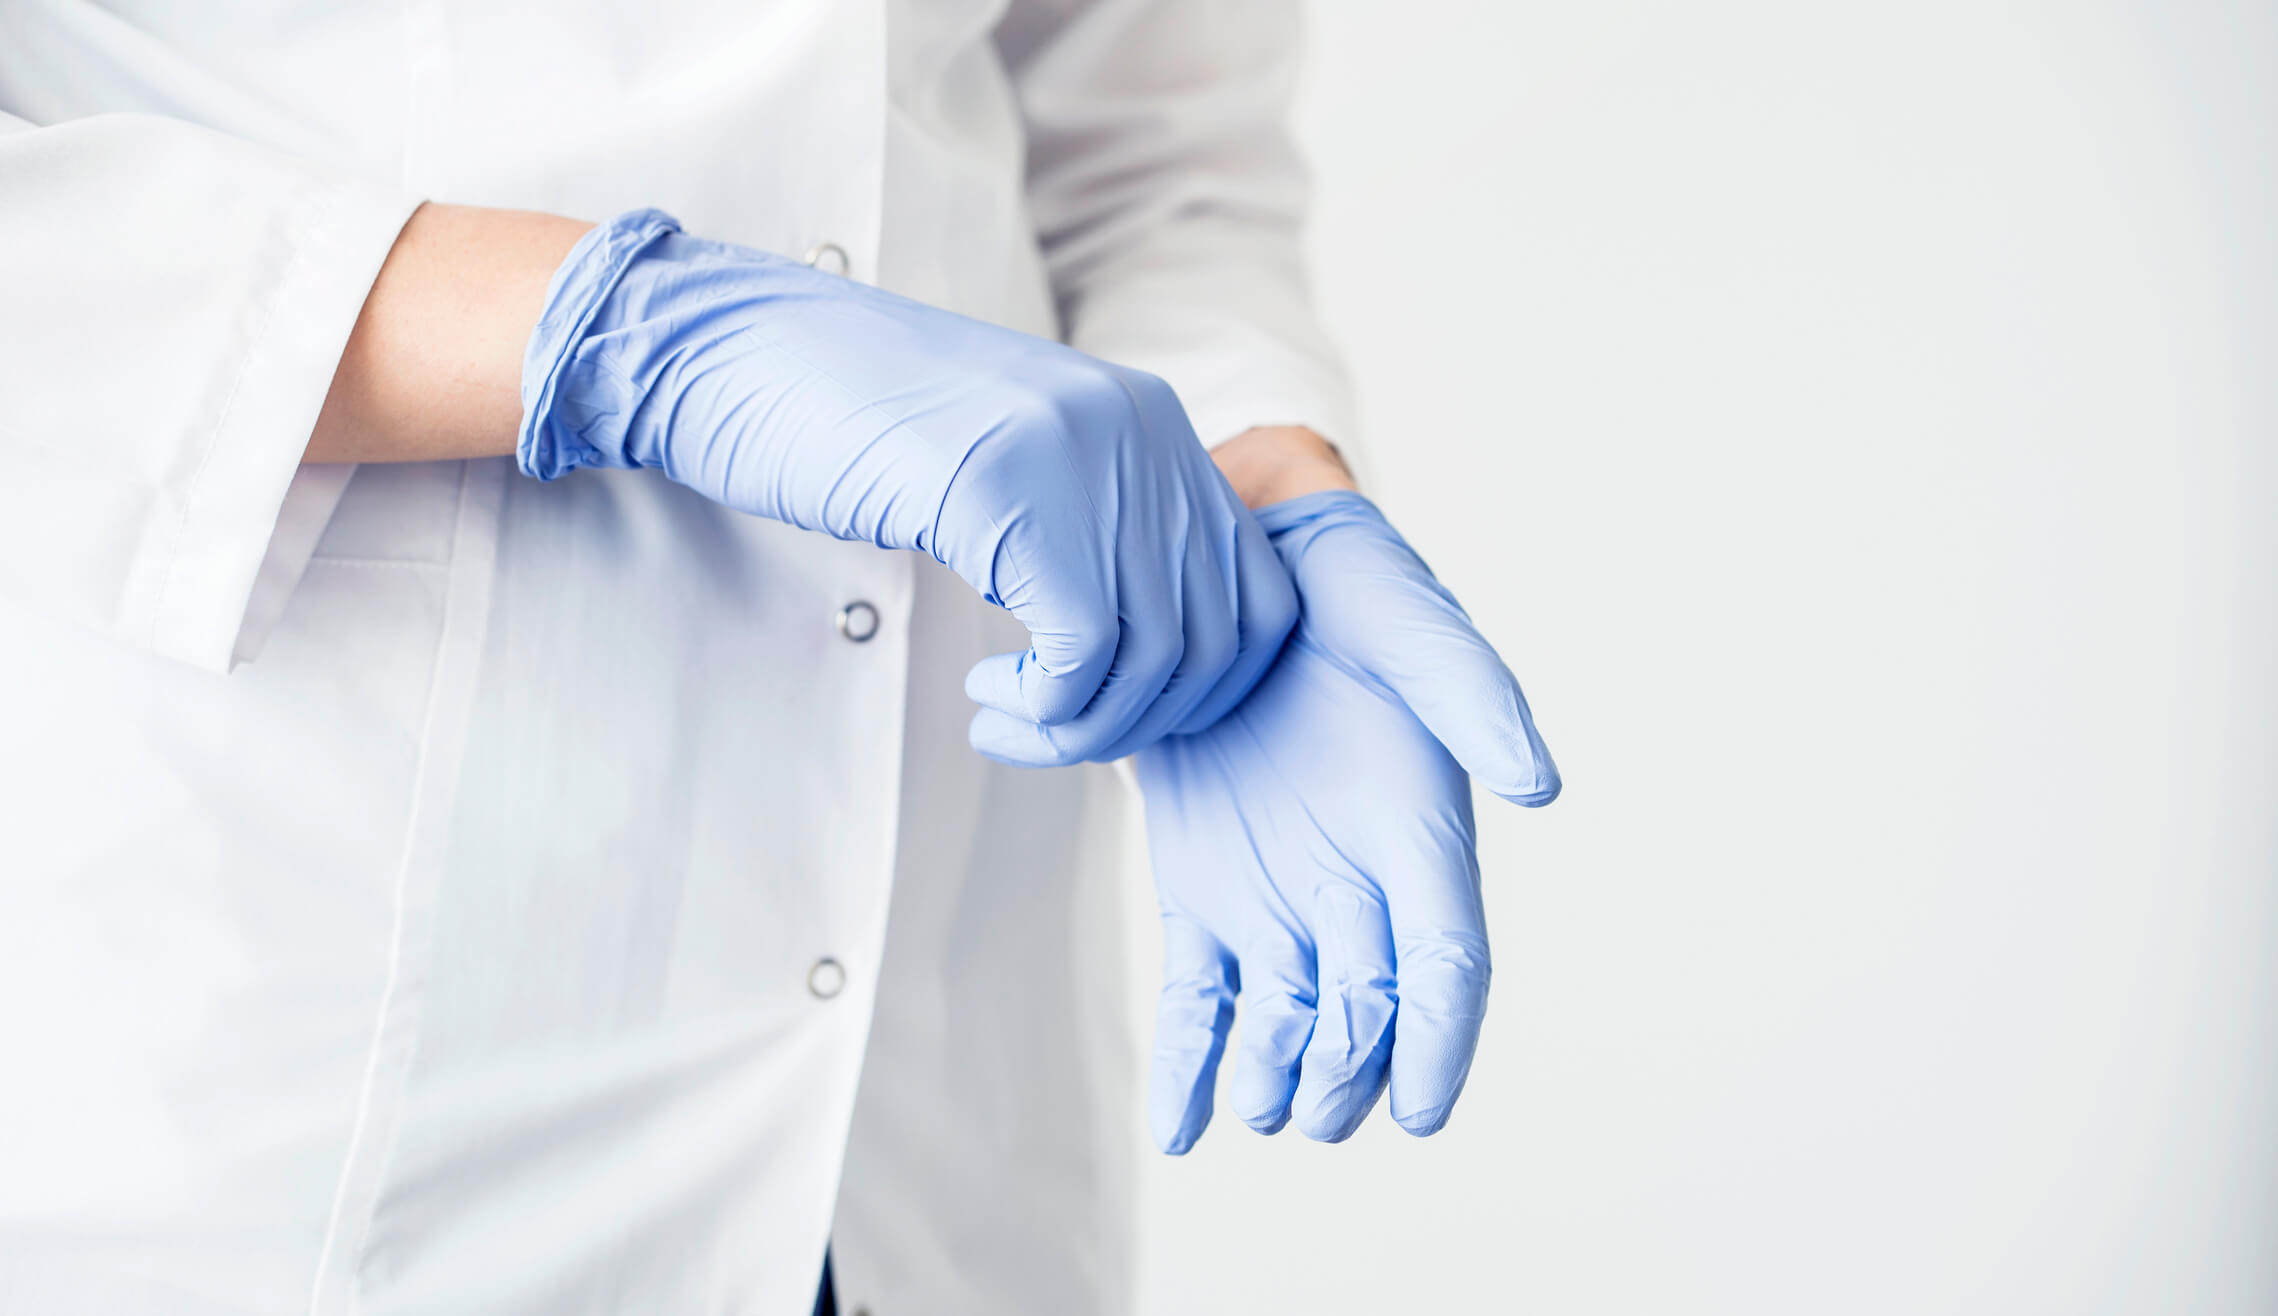 Suction Catheter Maintenance: 5 Best Practices to Follow